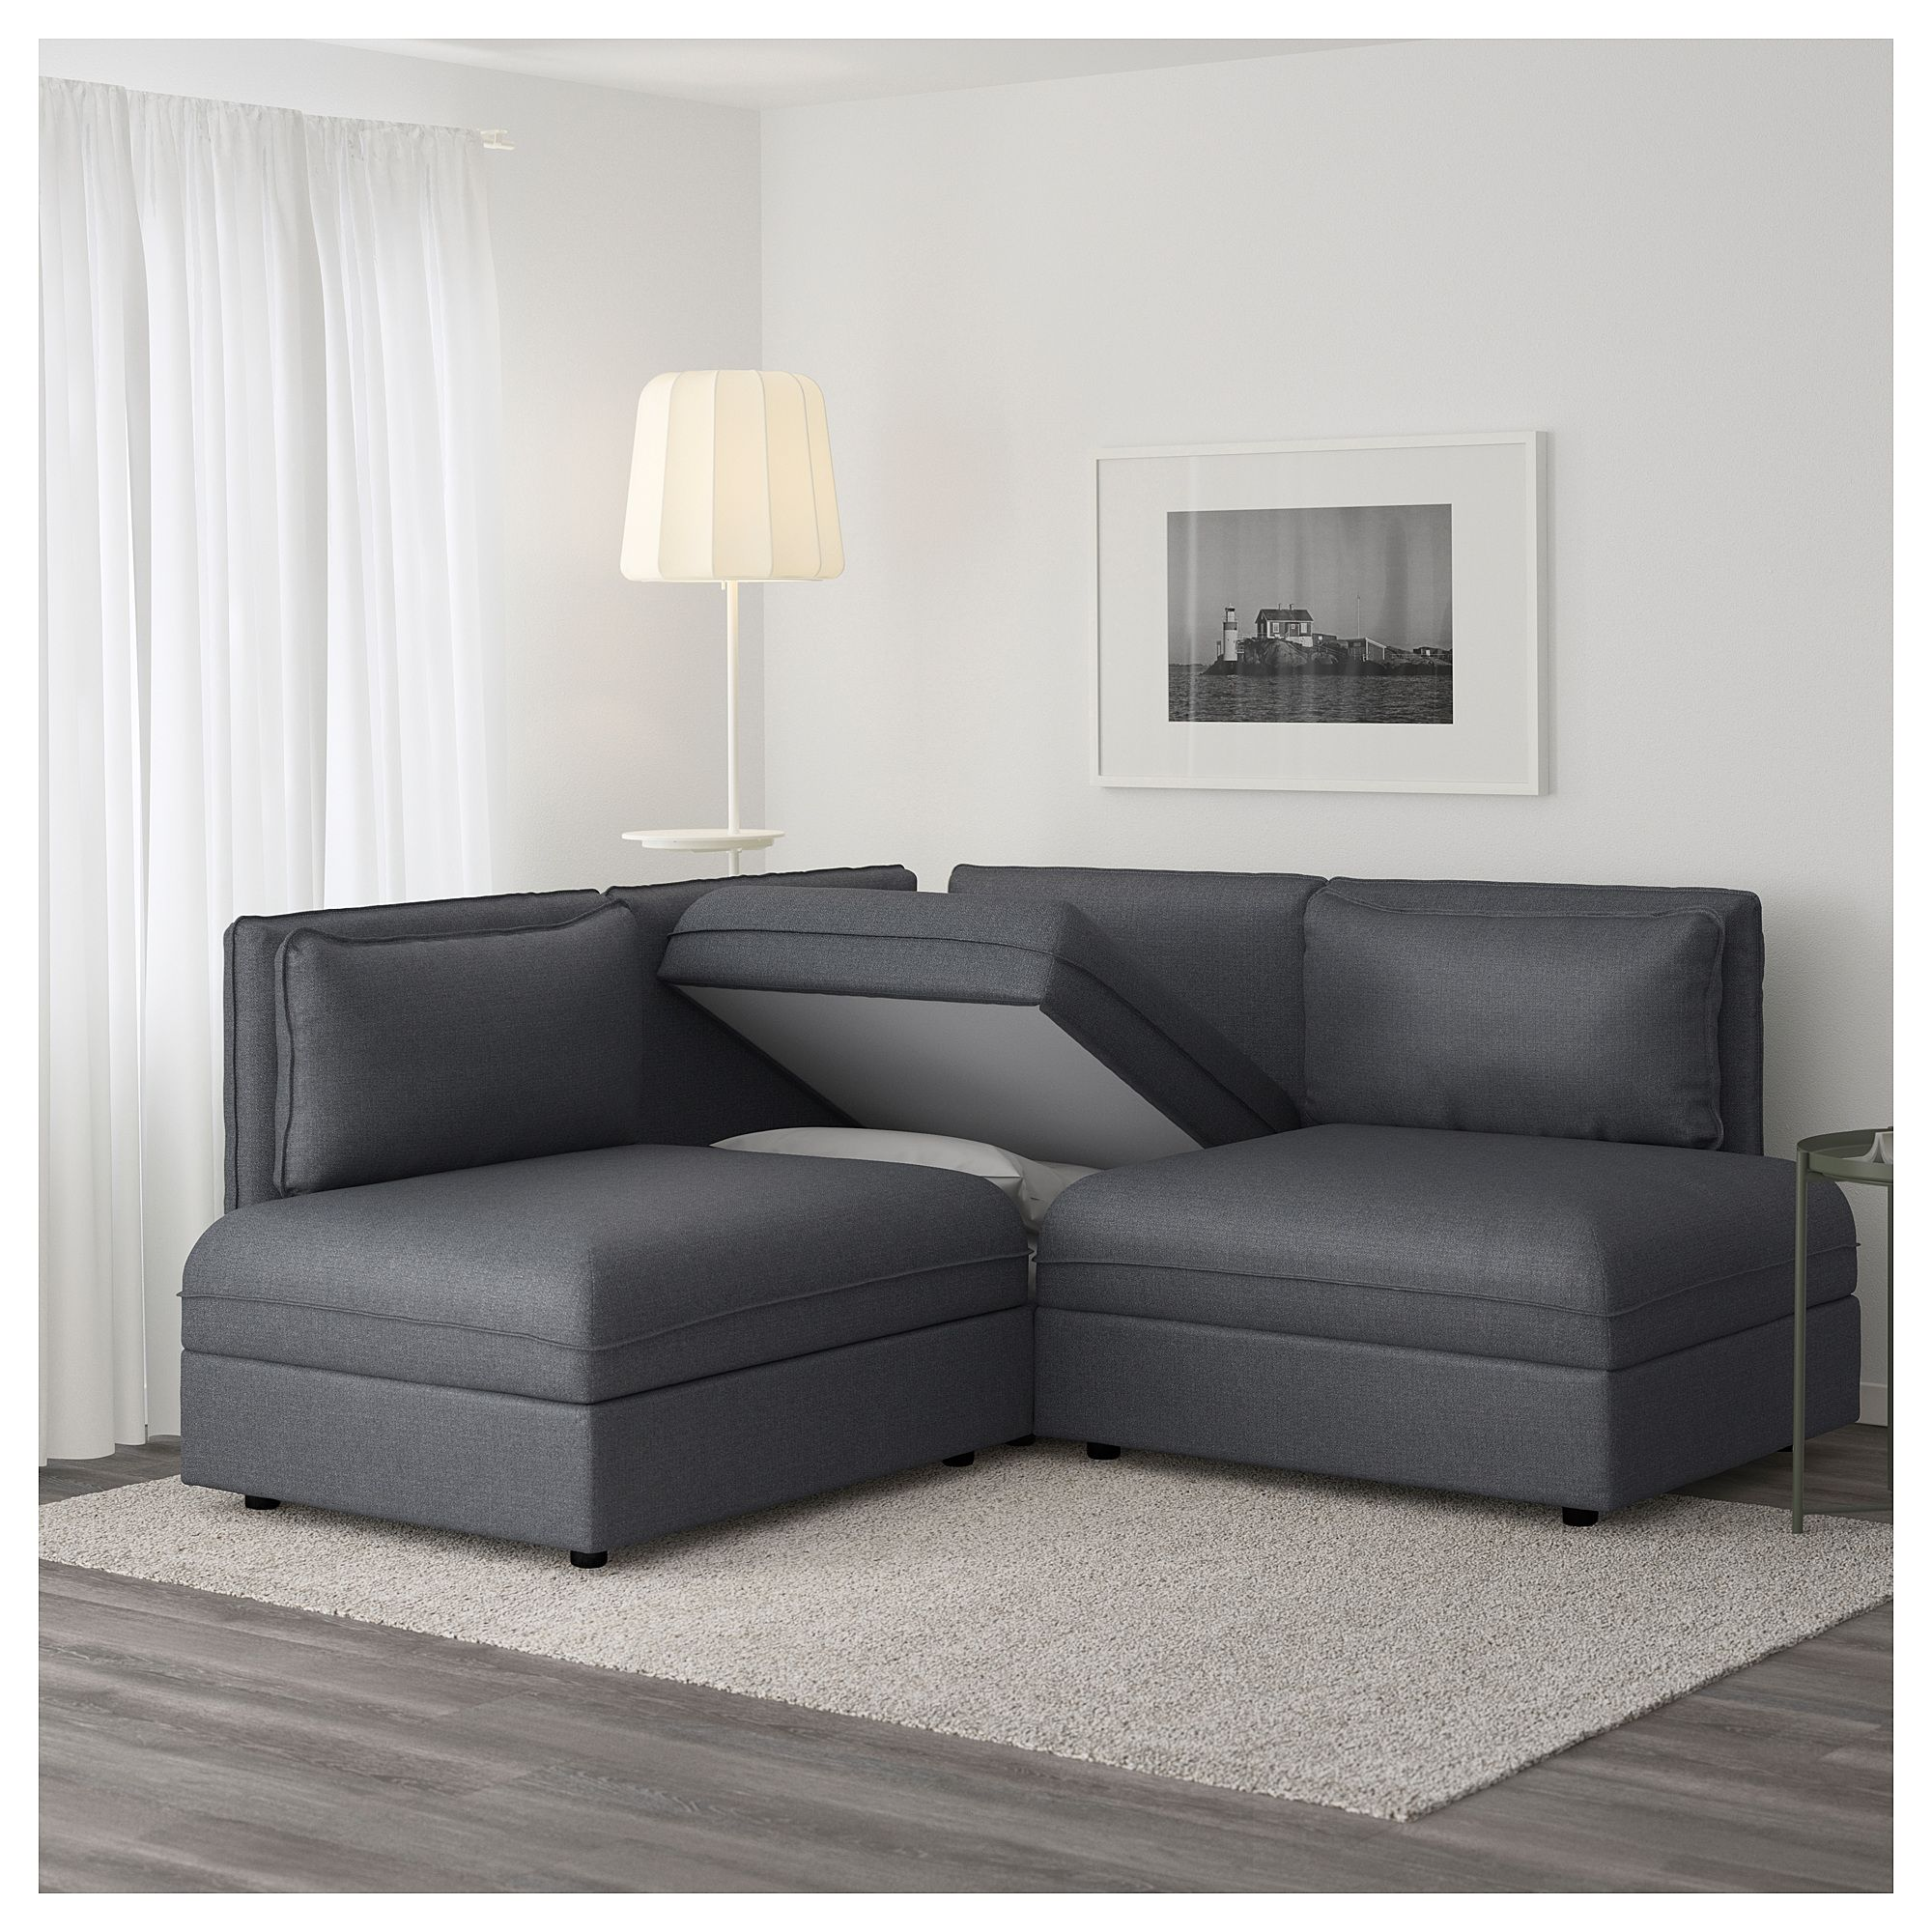 reclining leather black stretch small reviews velvet sleeper grey air mattress slipcovers with size furniture design canada tufted comfortable sets futon twin full of loveseat sectional ikea creative tilly living sofa room lycksele